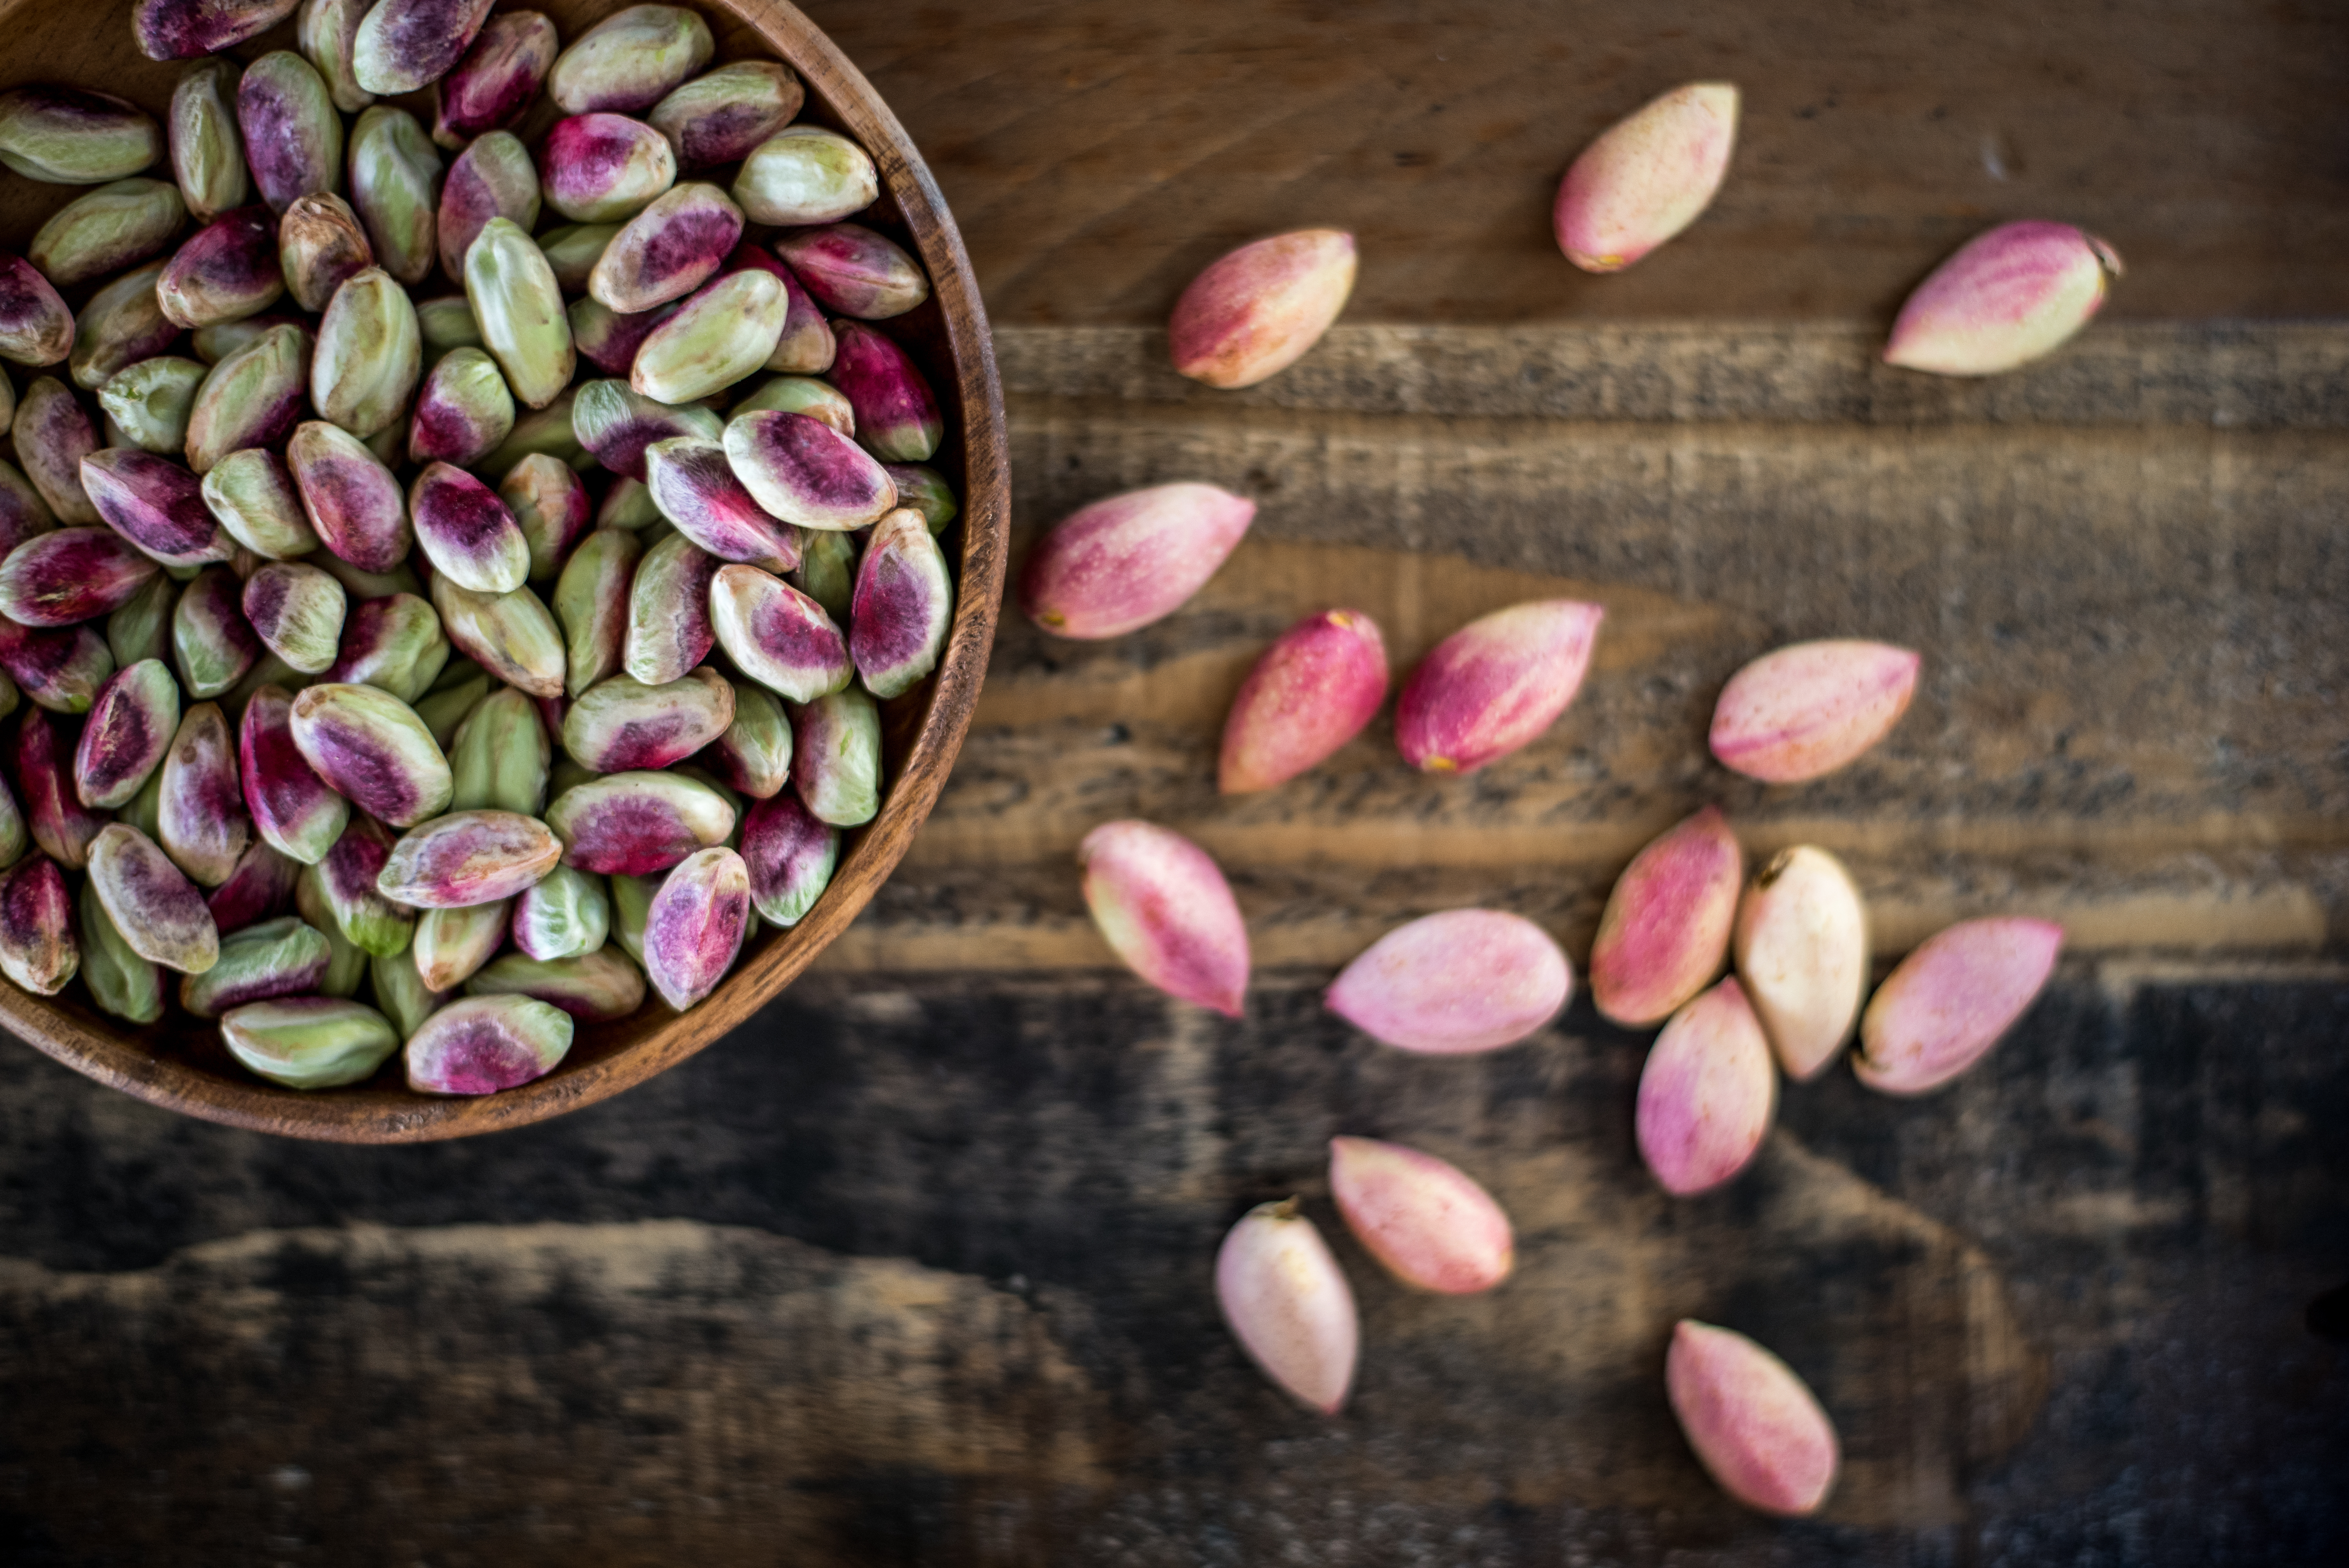 American Pistachio Marketing Plans for 2019 to Include India